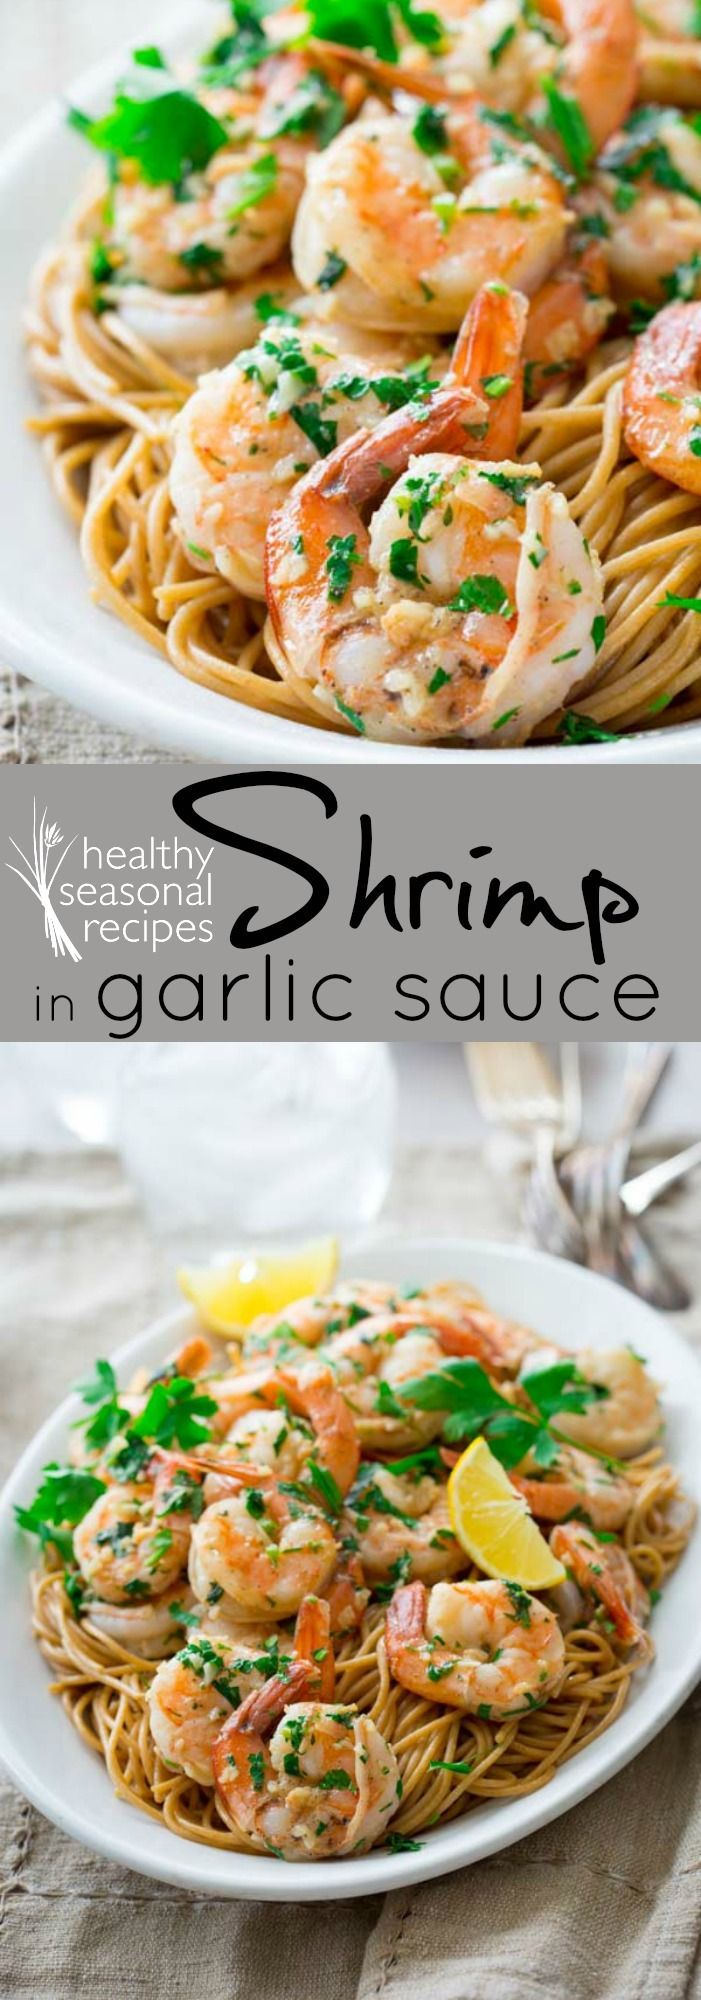 shrimp in garlic sauce - Healthy Seasonal Recipes